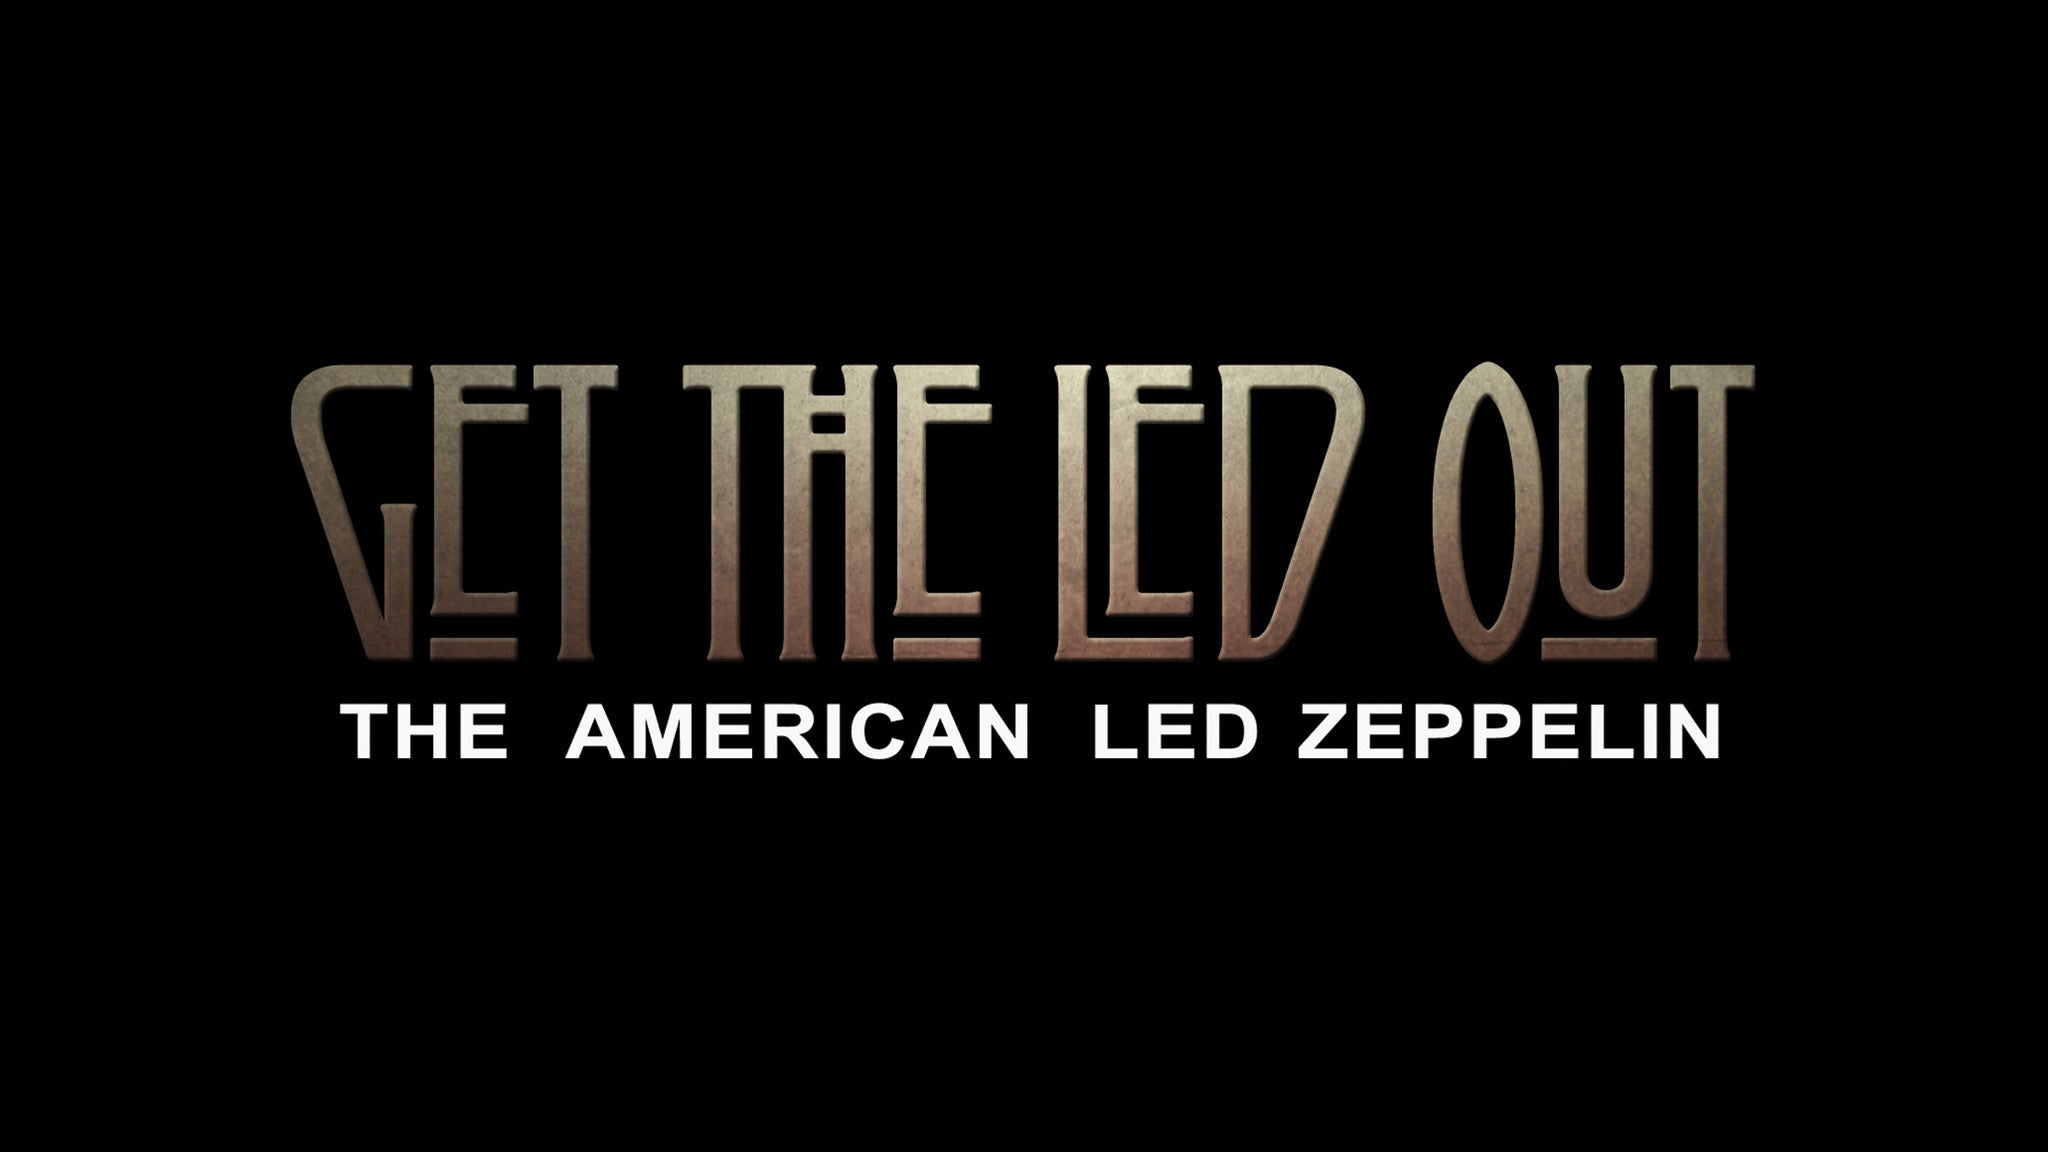 Get the Led Out at Florida Theatre Jacksonville